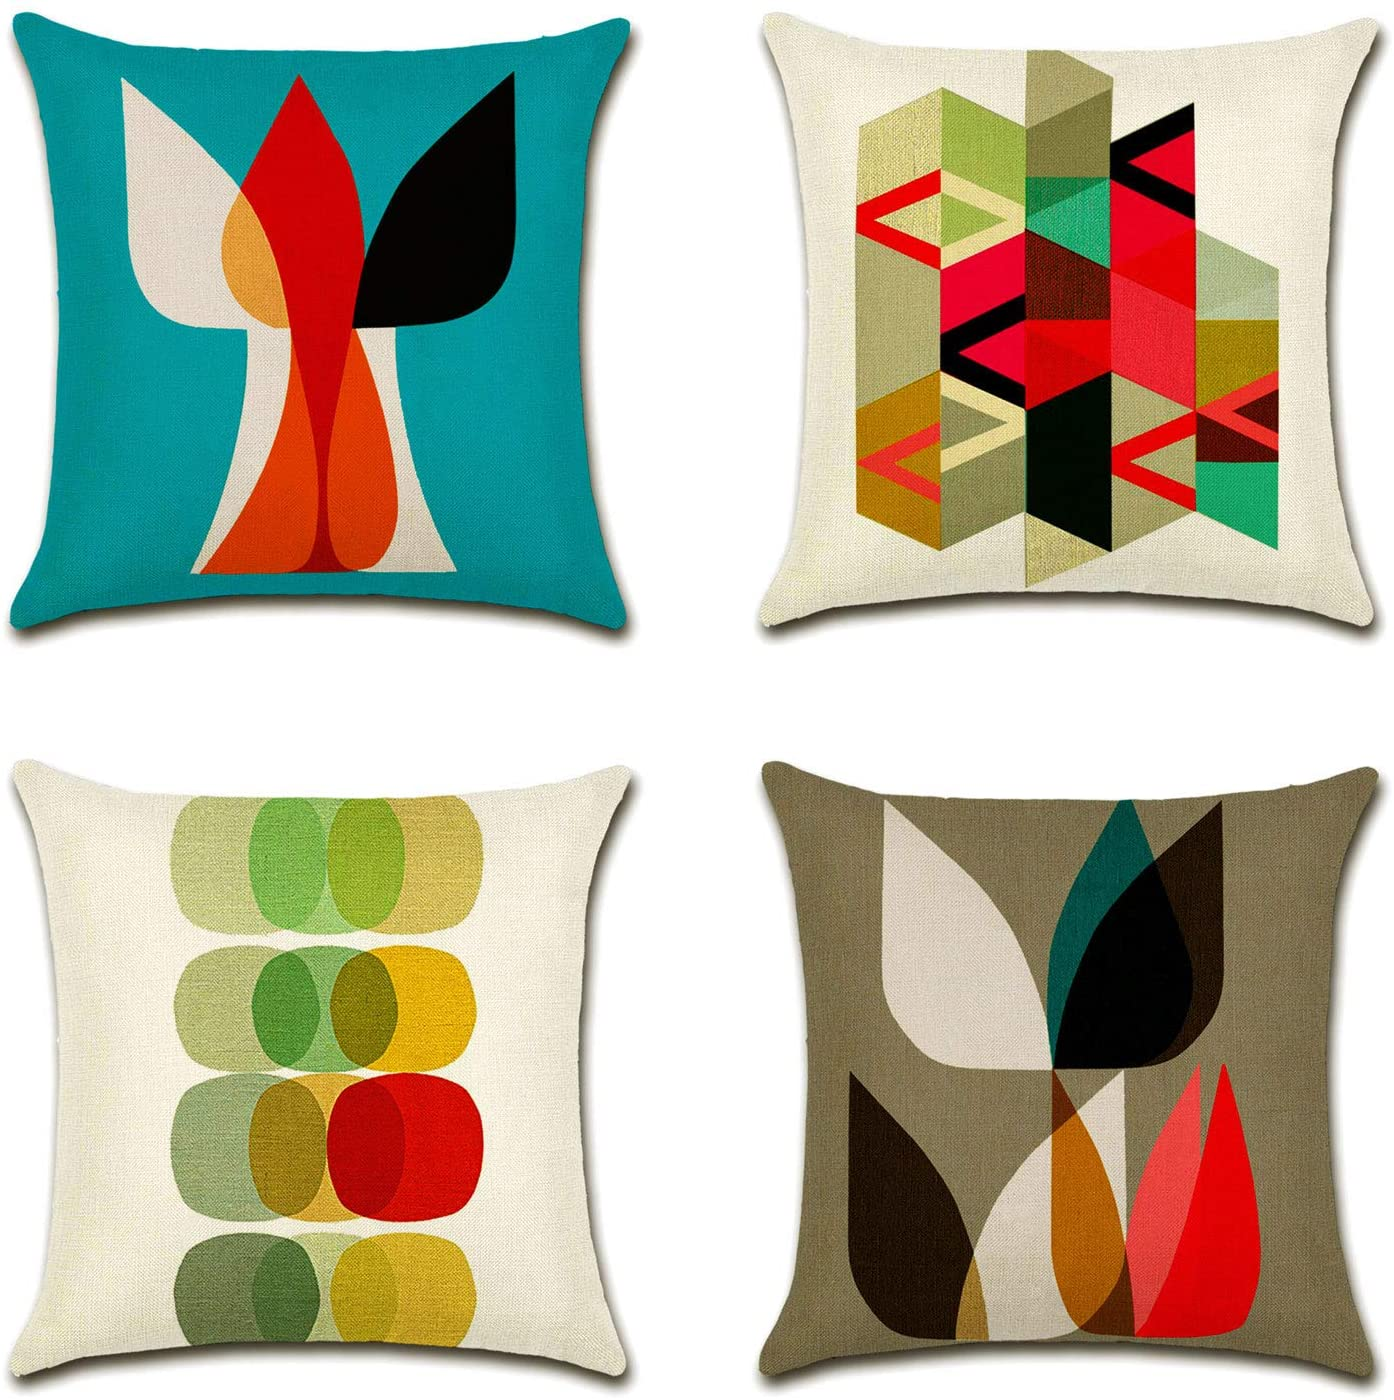 6 mid century modern throw pillows from